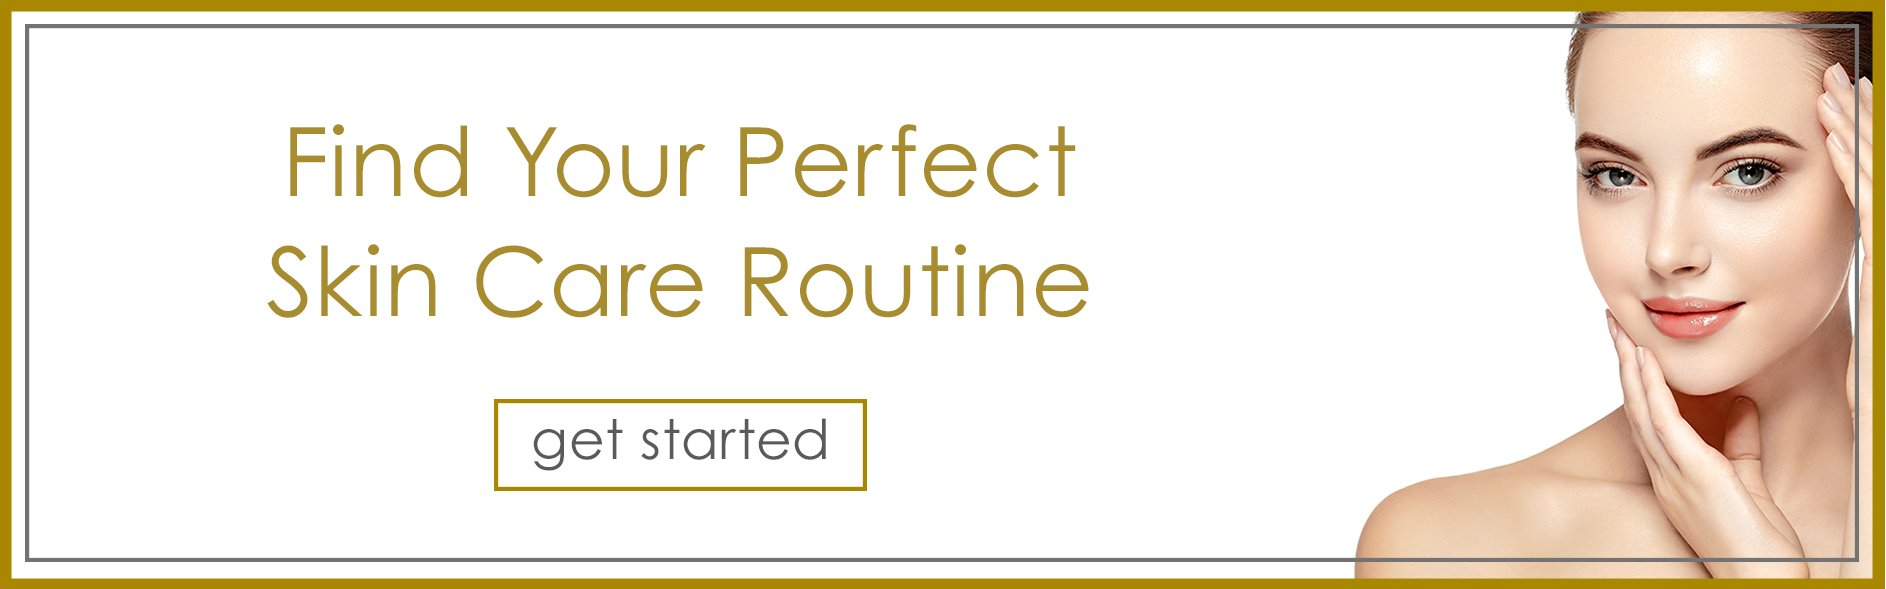 Find your night and day skin care routine steps. Customizable skin care routine for skin types, age and skin concerns.